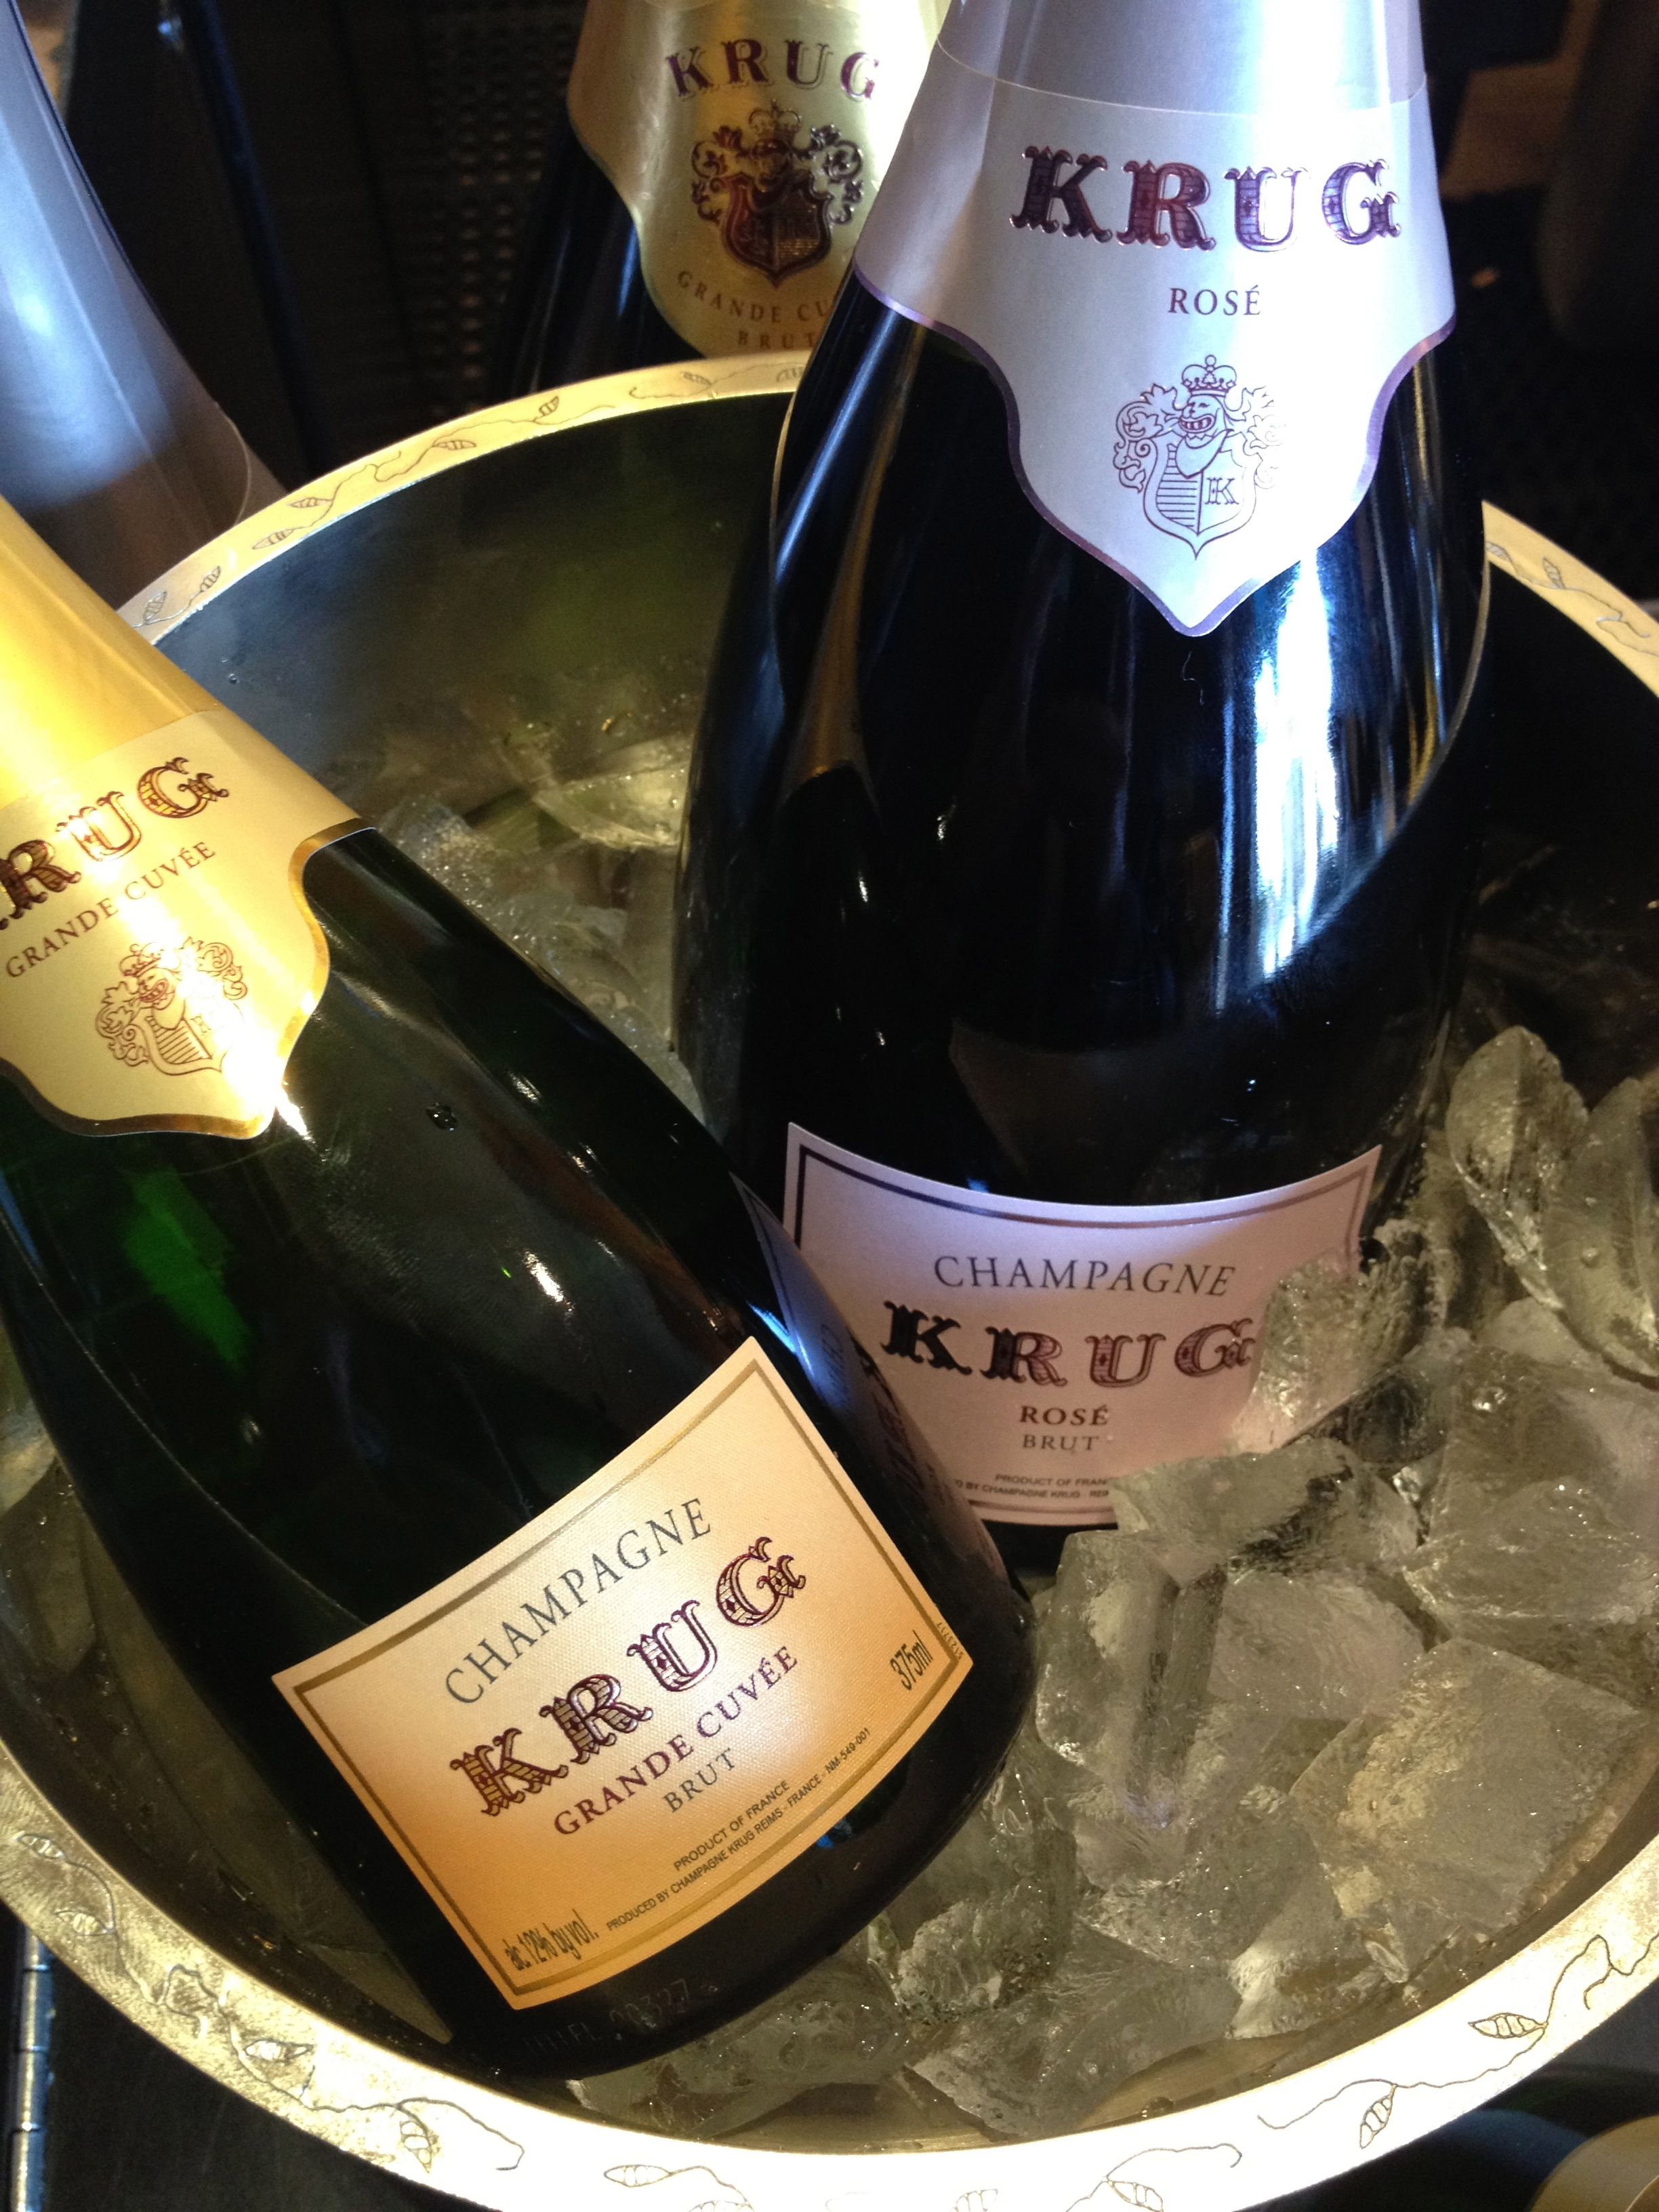 Now serving Krug Champagne in THE Blvd